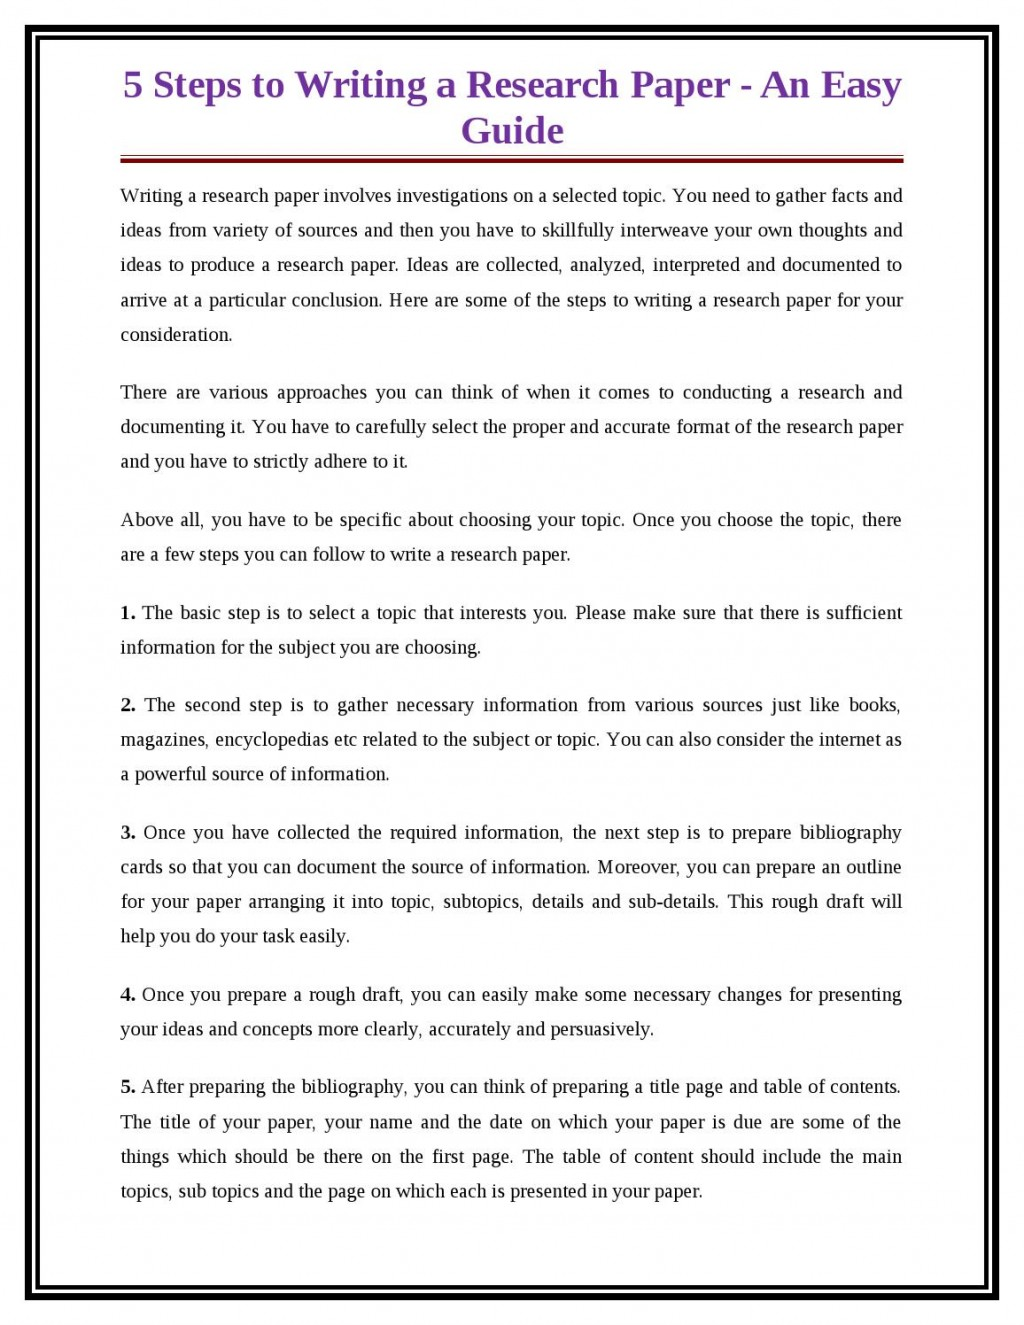 005 Research Paper Steps For Writing Page 1 Breathtaking A In Ppt 10 To Write Basic Easy Large